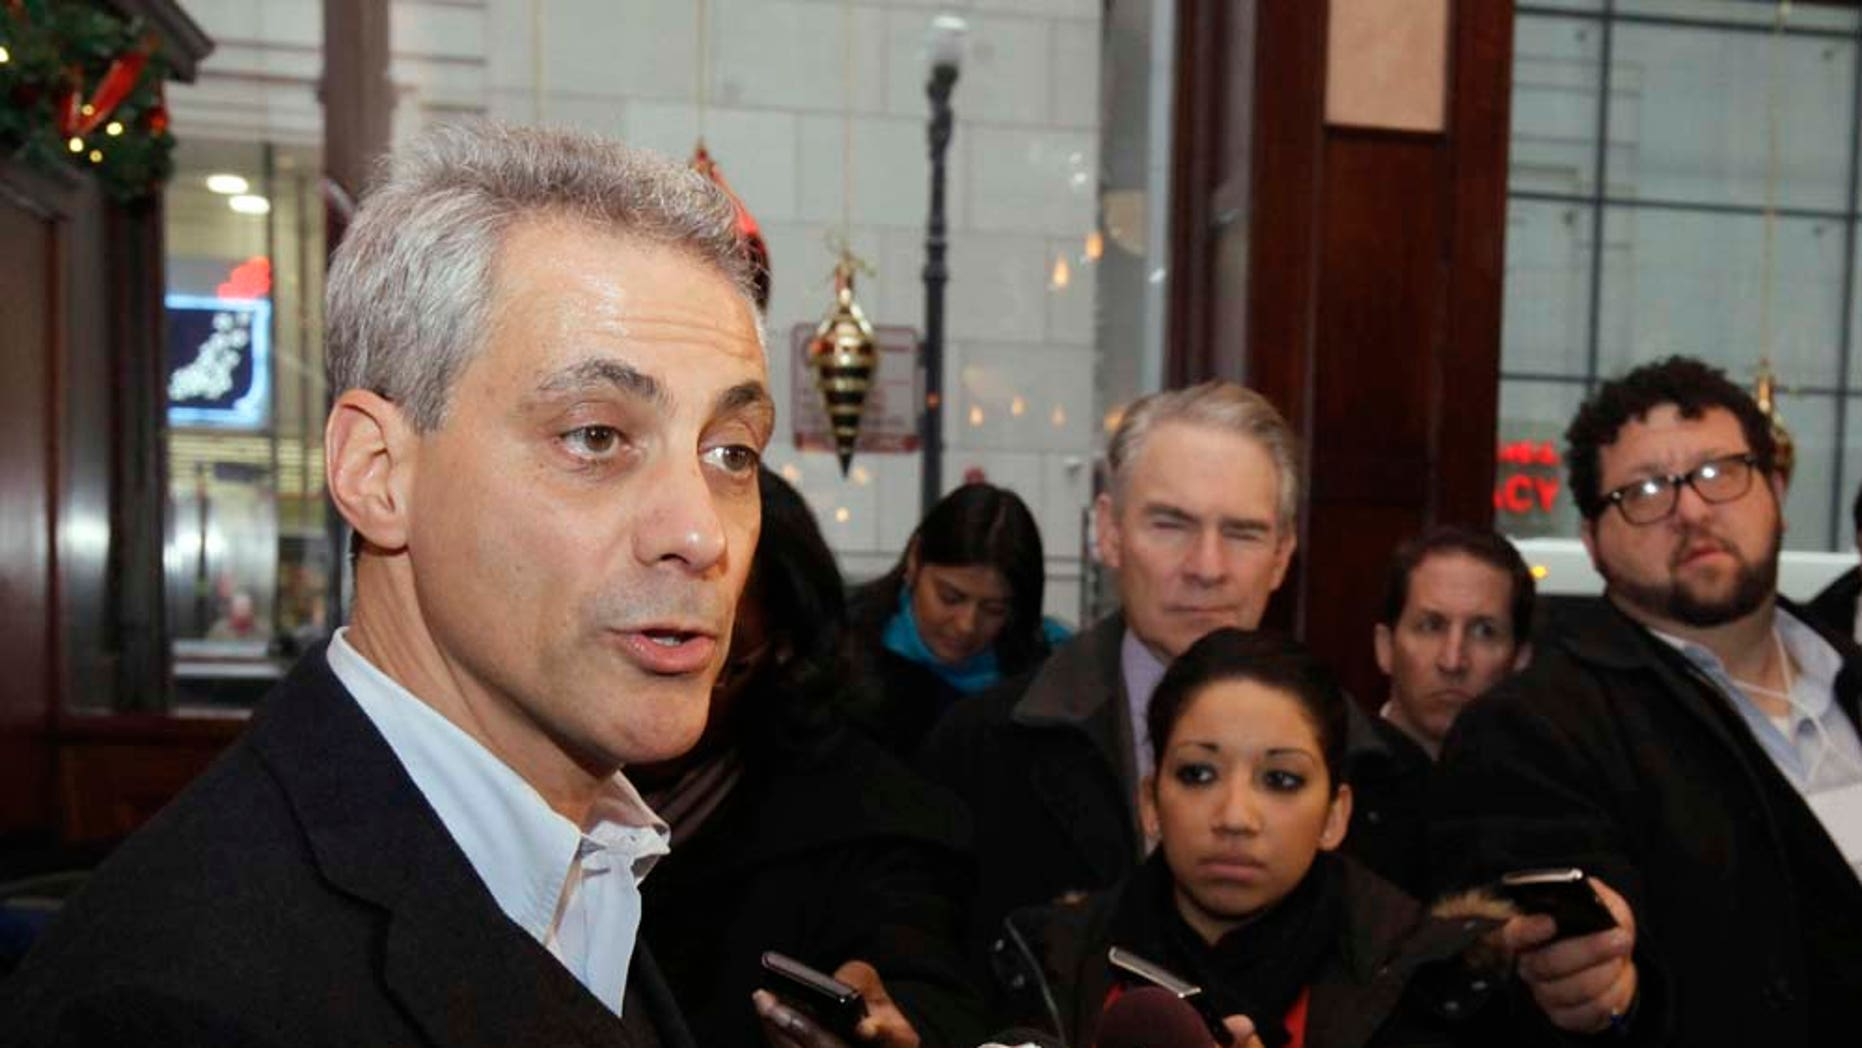 Chicago Mayor Rahm Emanuel speaks at a press conference in Chicago.